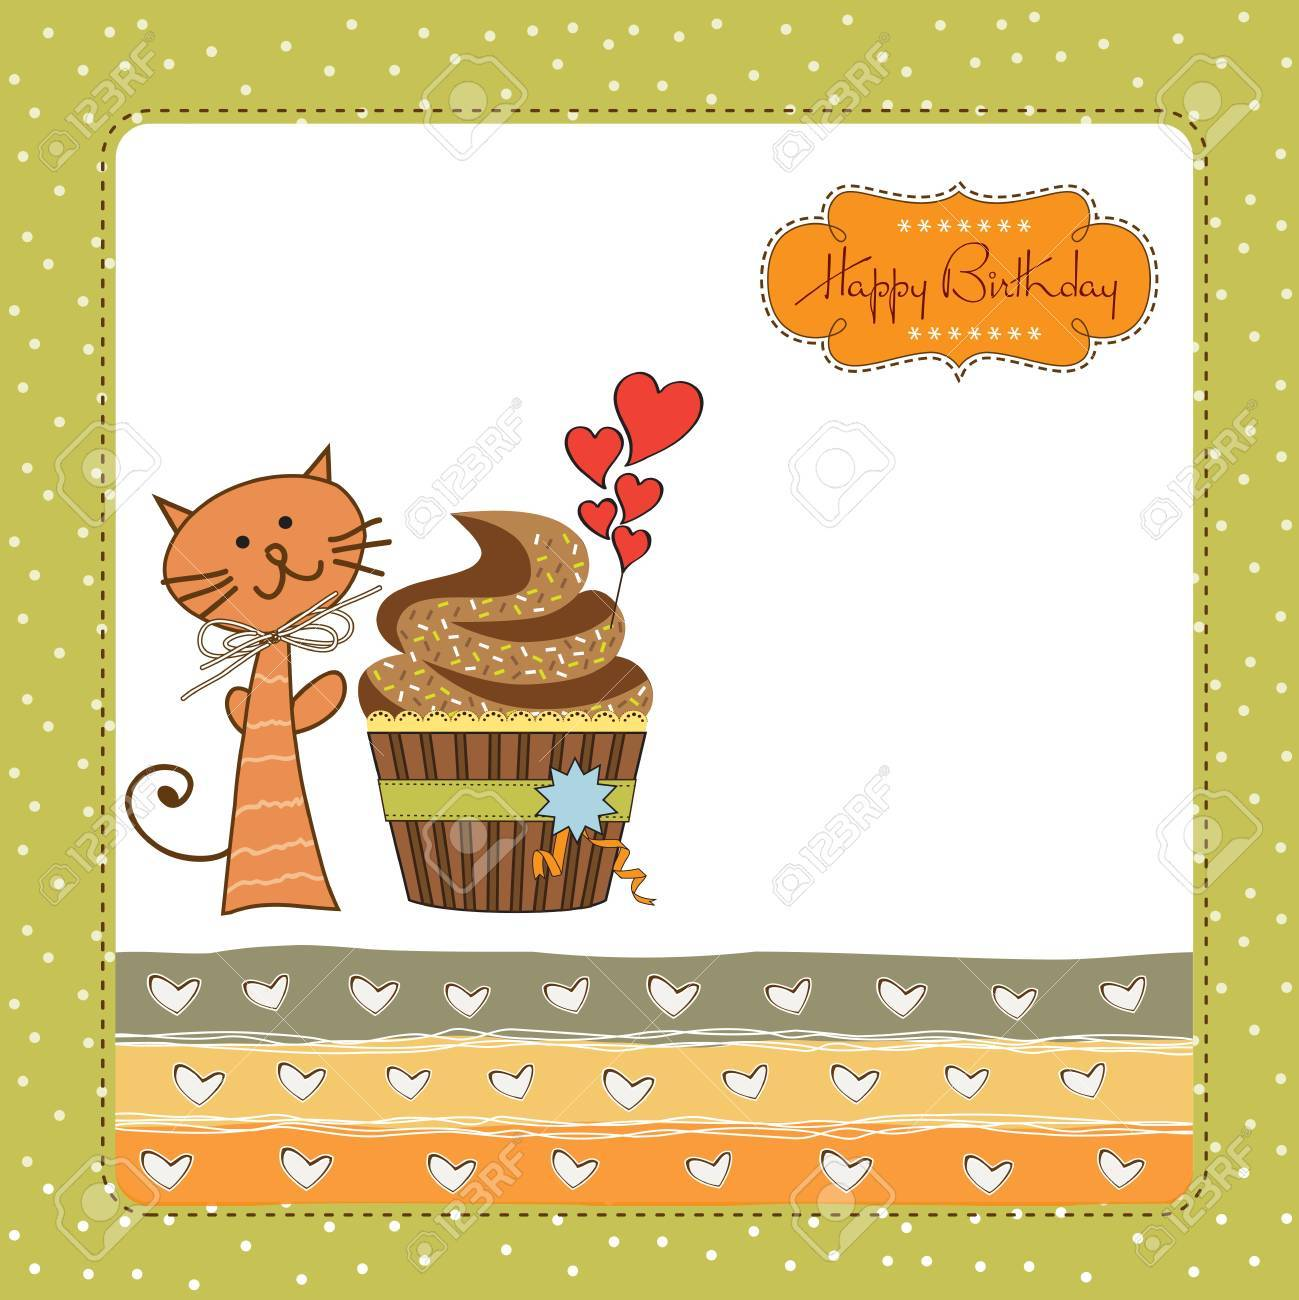 Birthday Greeting Card With Cupcake And Cat Royalty Free Cliparts